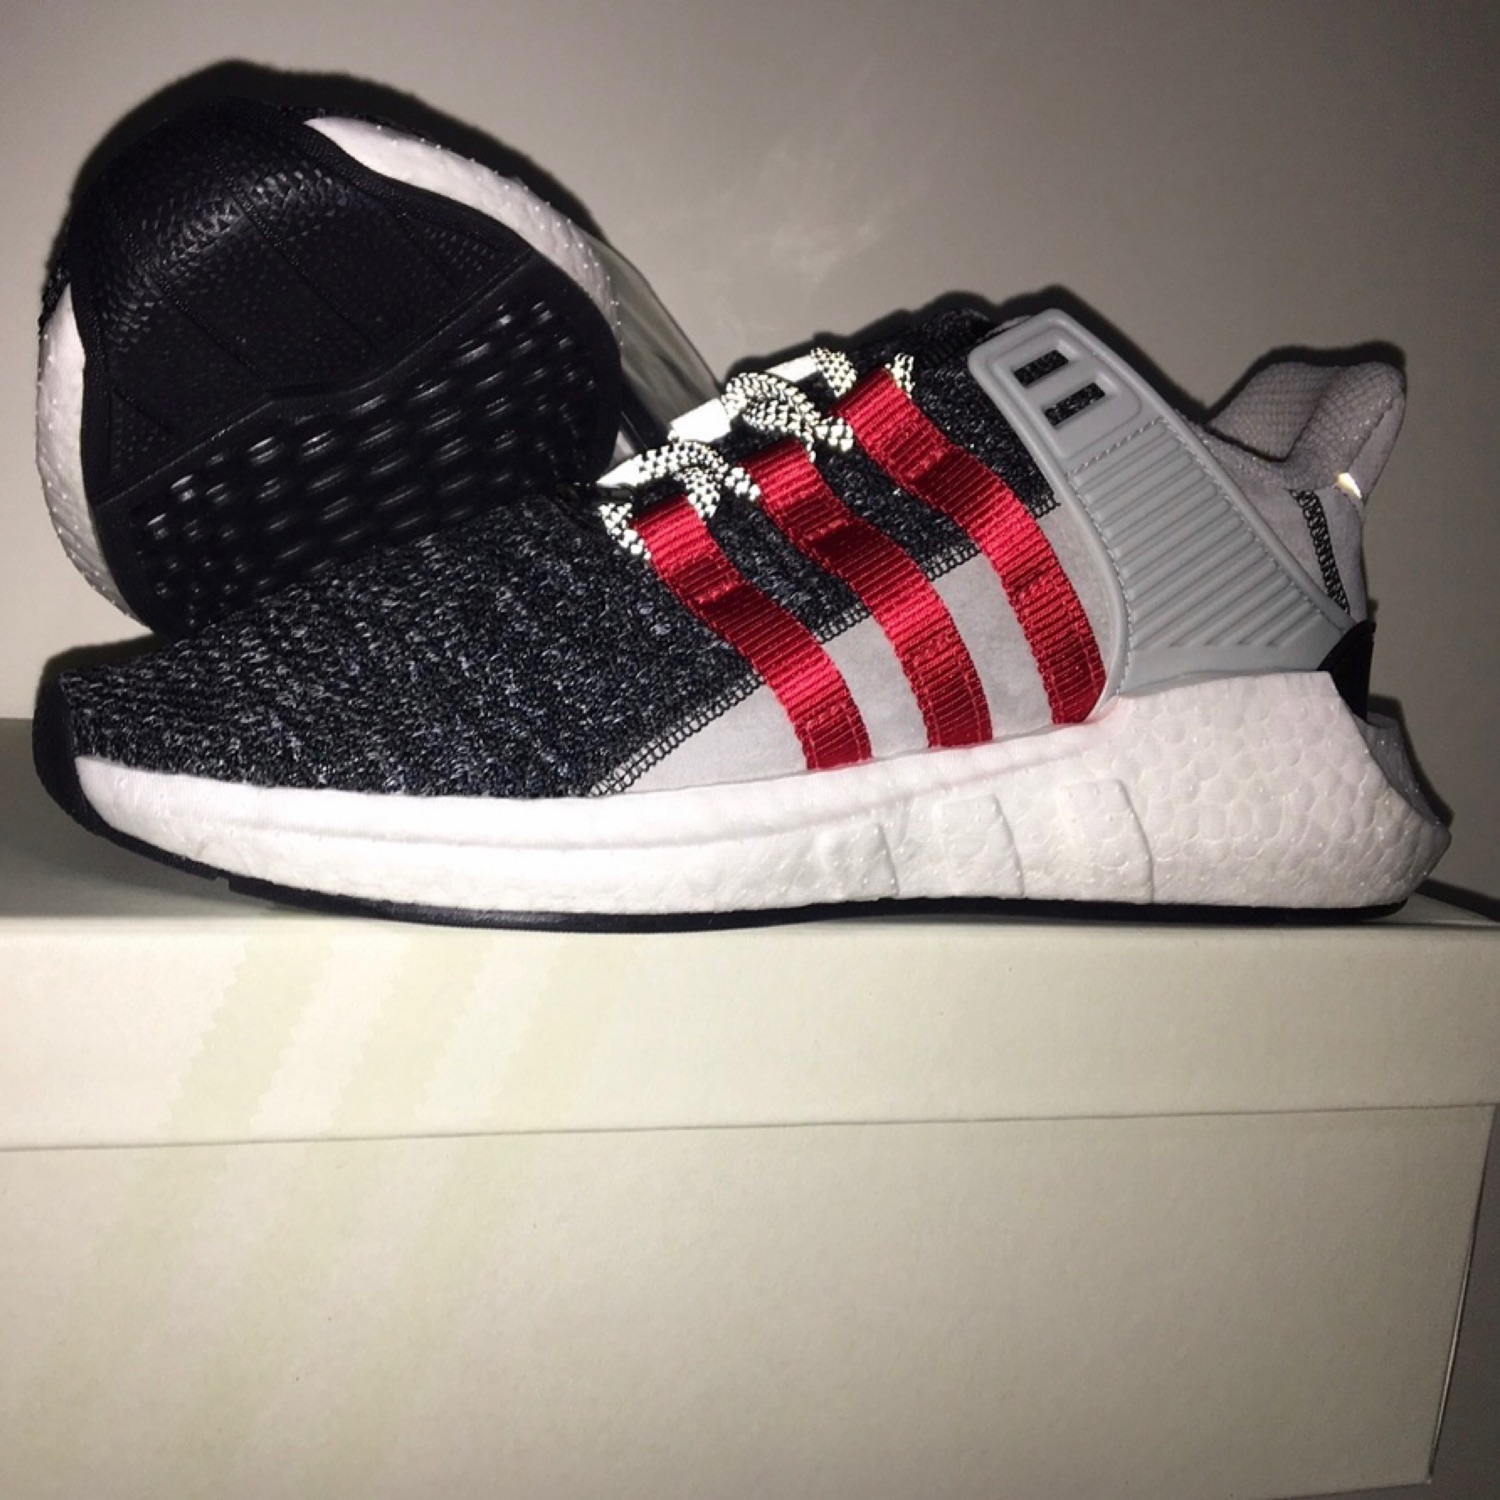 premium selection 66271 0700a Adidas Eqt Overkill